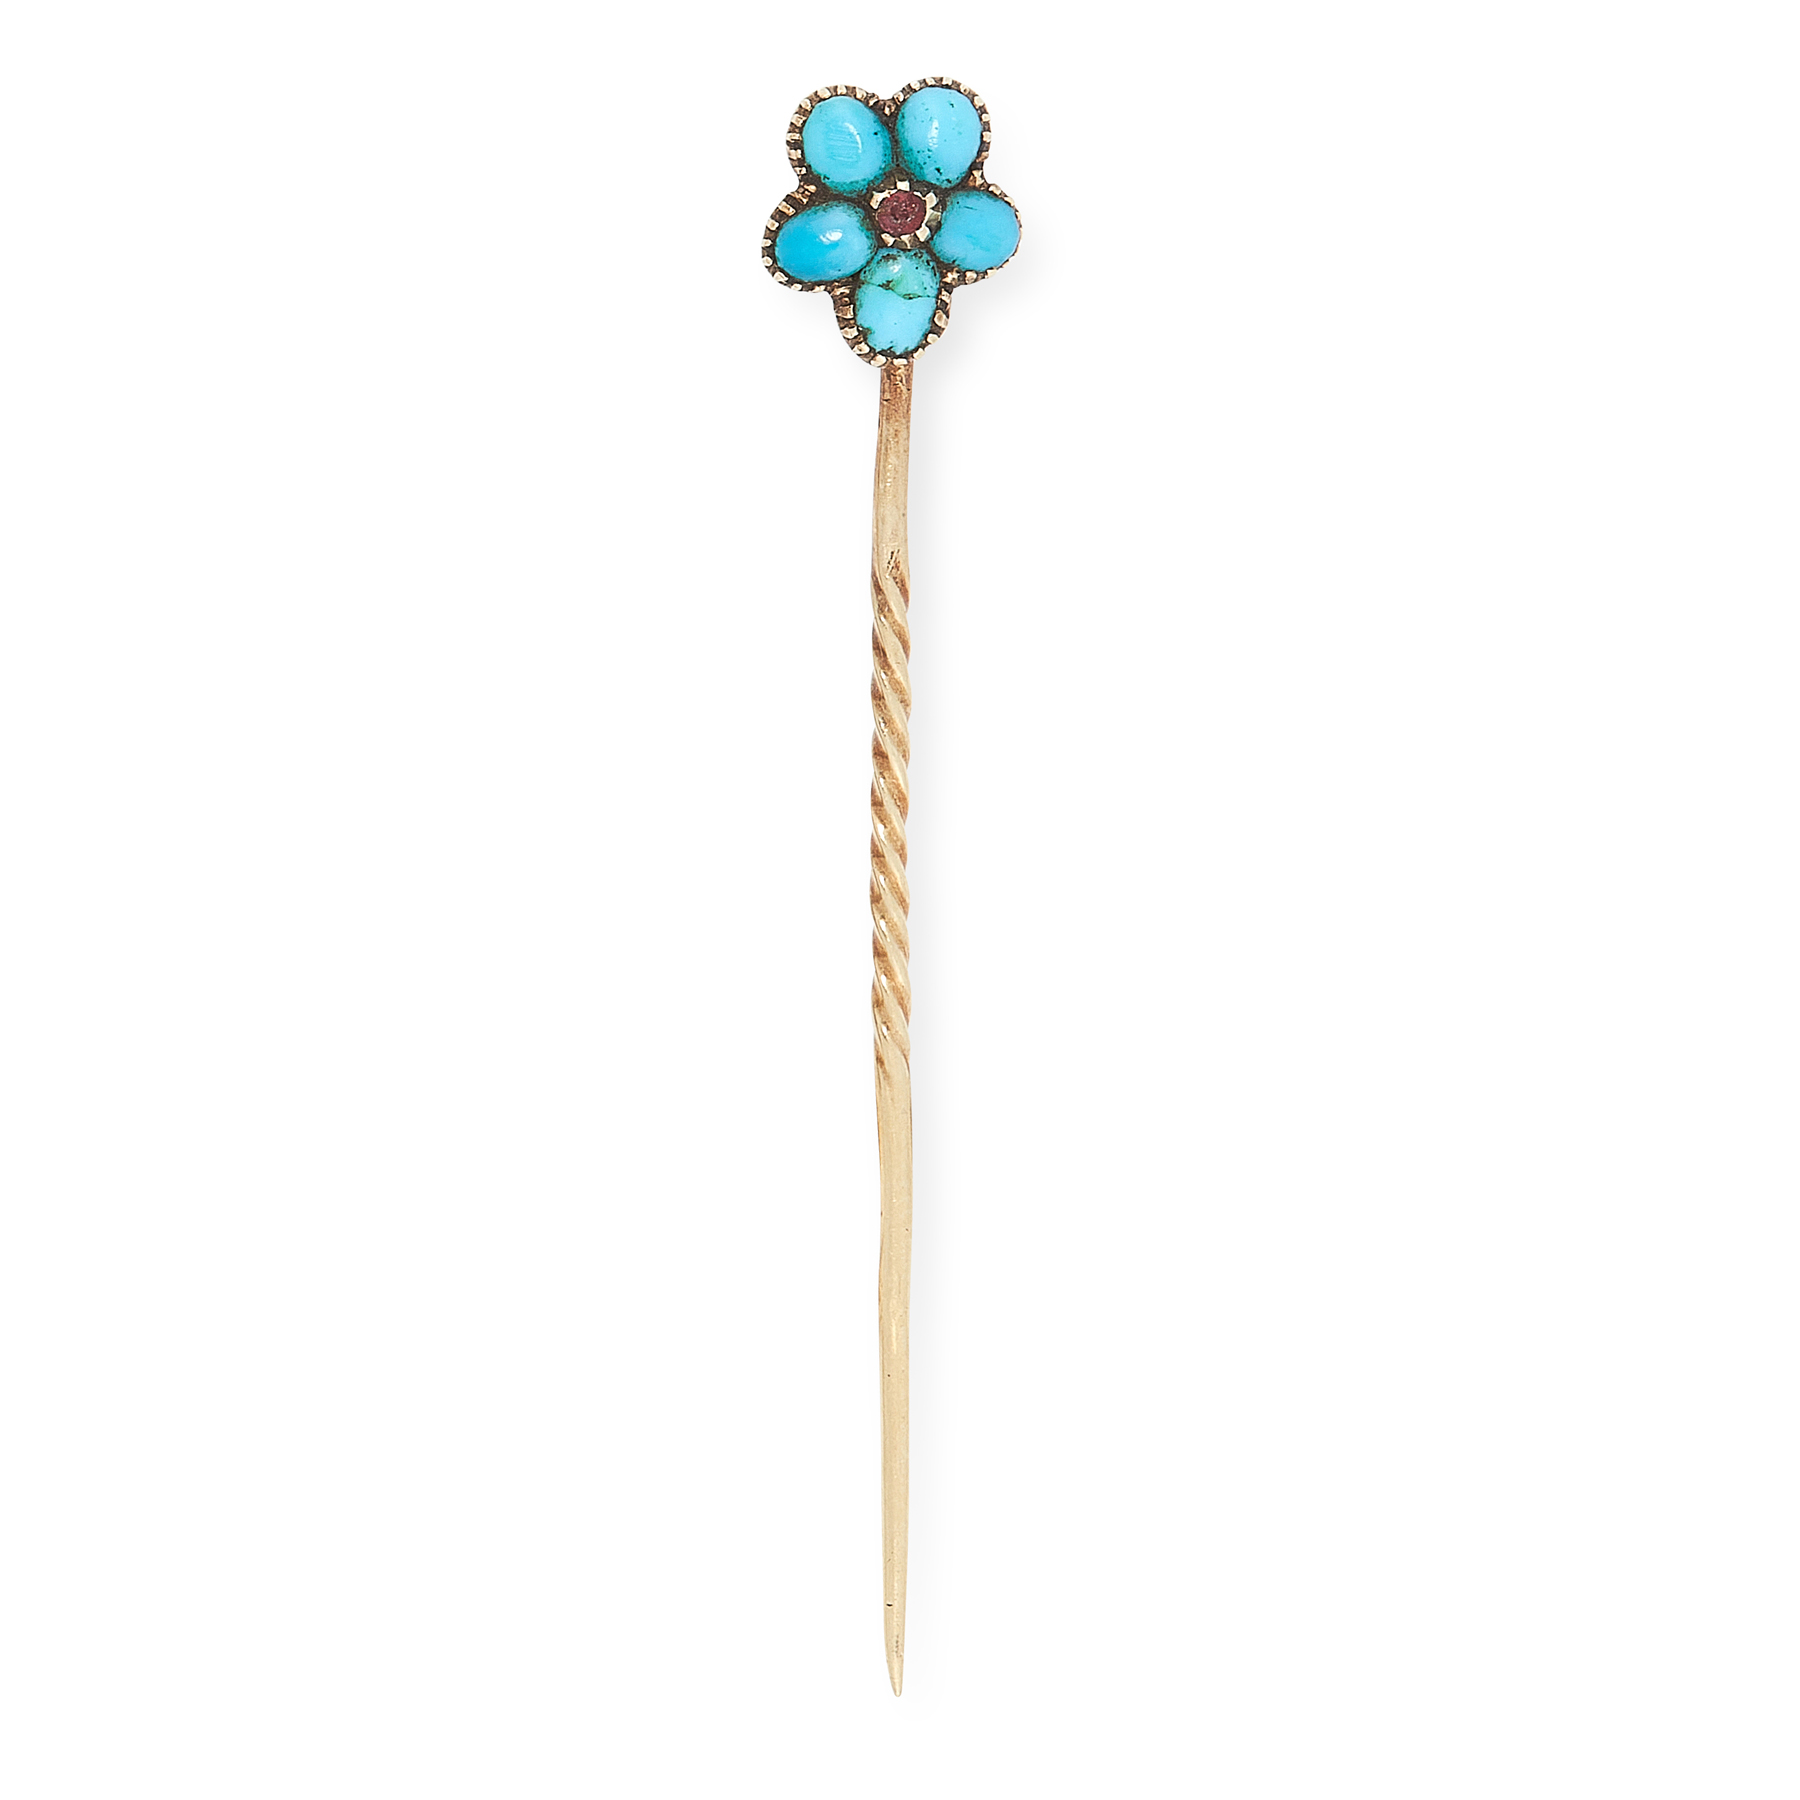 AN ANTIQUE TURQUOISE AND RUBY FORGET-ME-NOT TIE PIN in yellow gold, the stick pin set with a